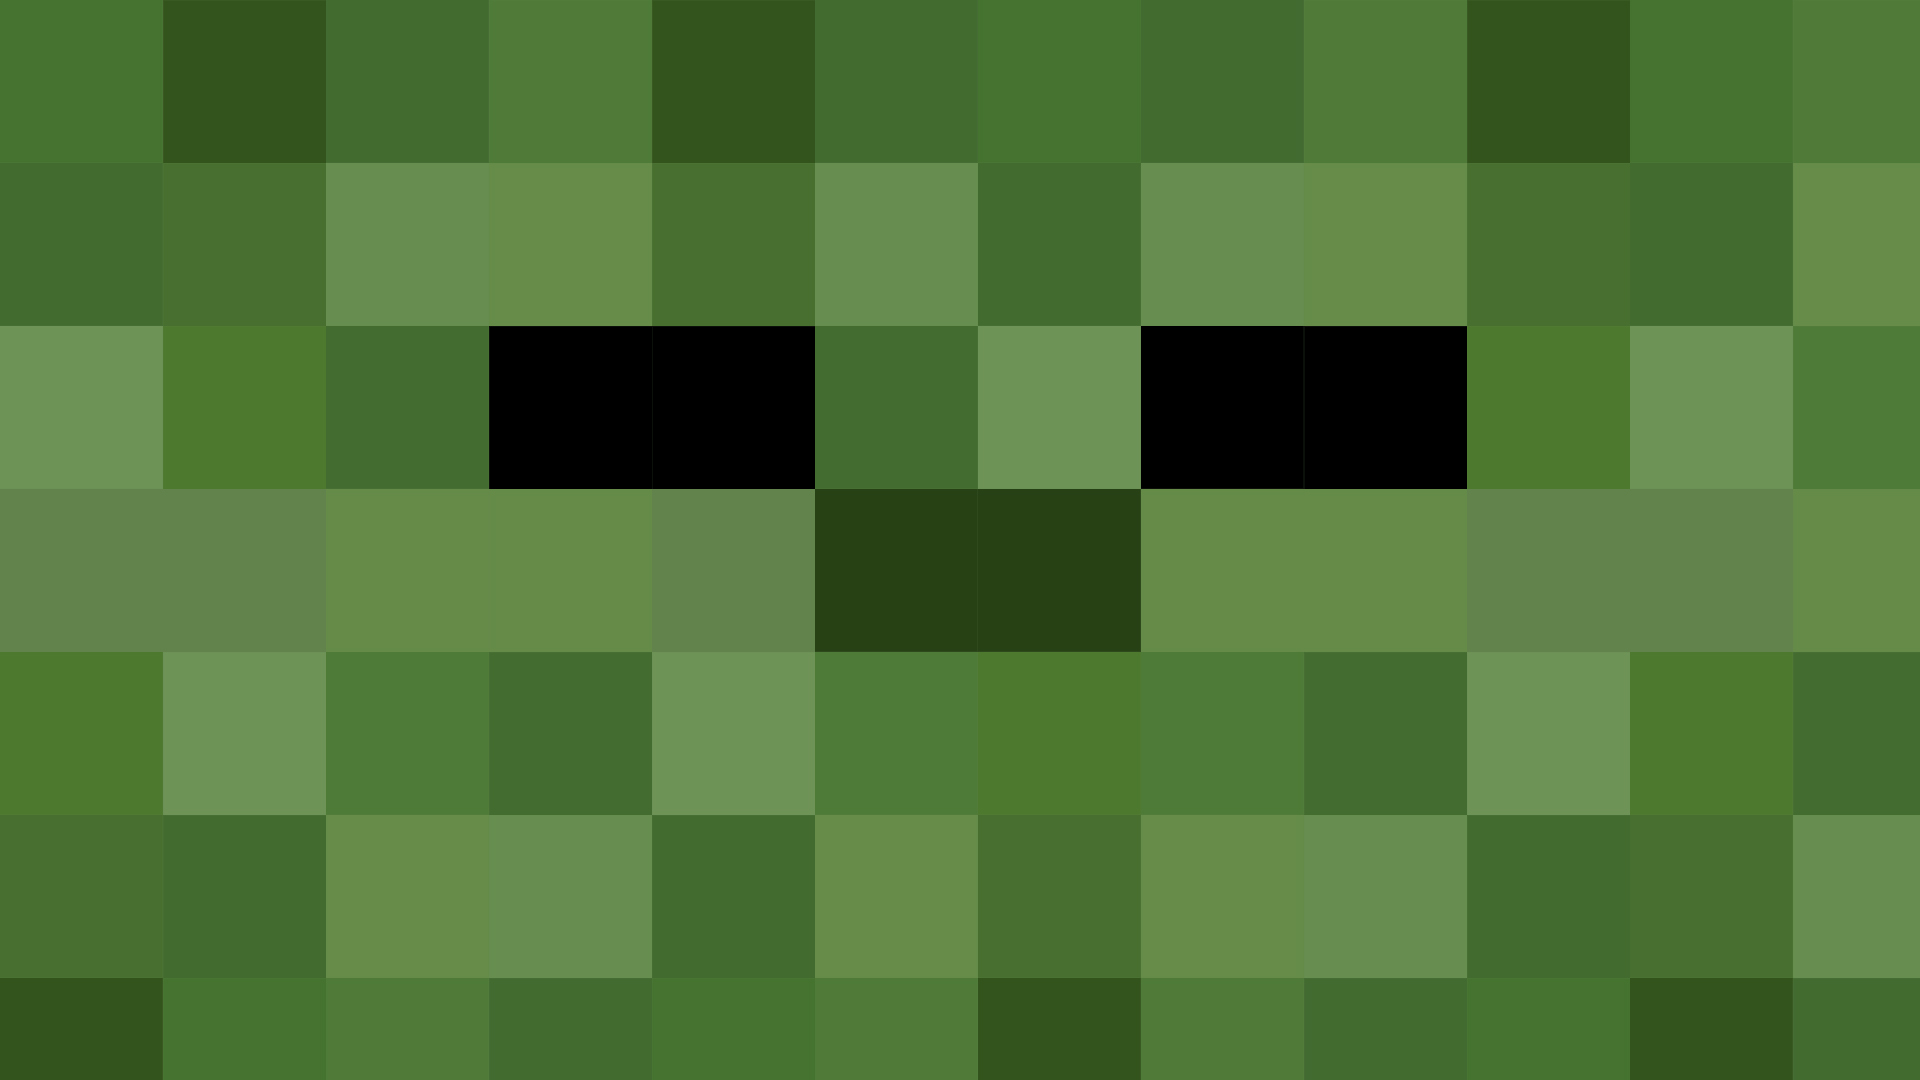 Hd minecraft zombie wallpaper by karl with a c on deviantart - Zombie style minecraft ...